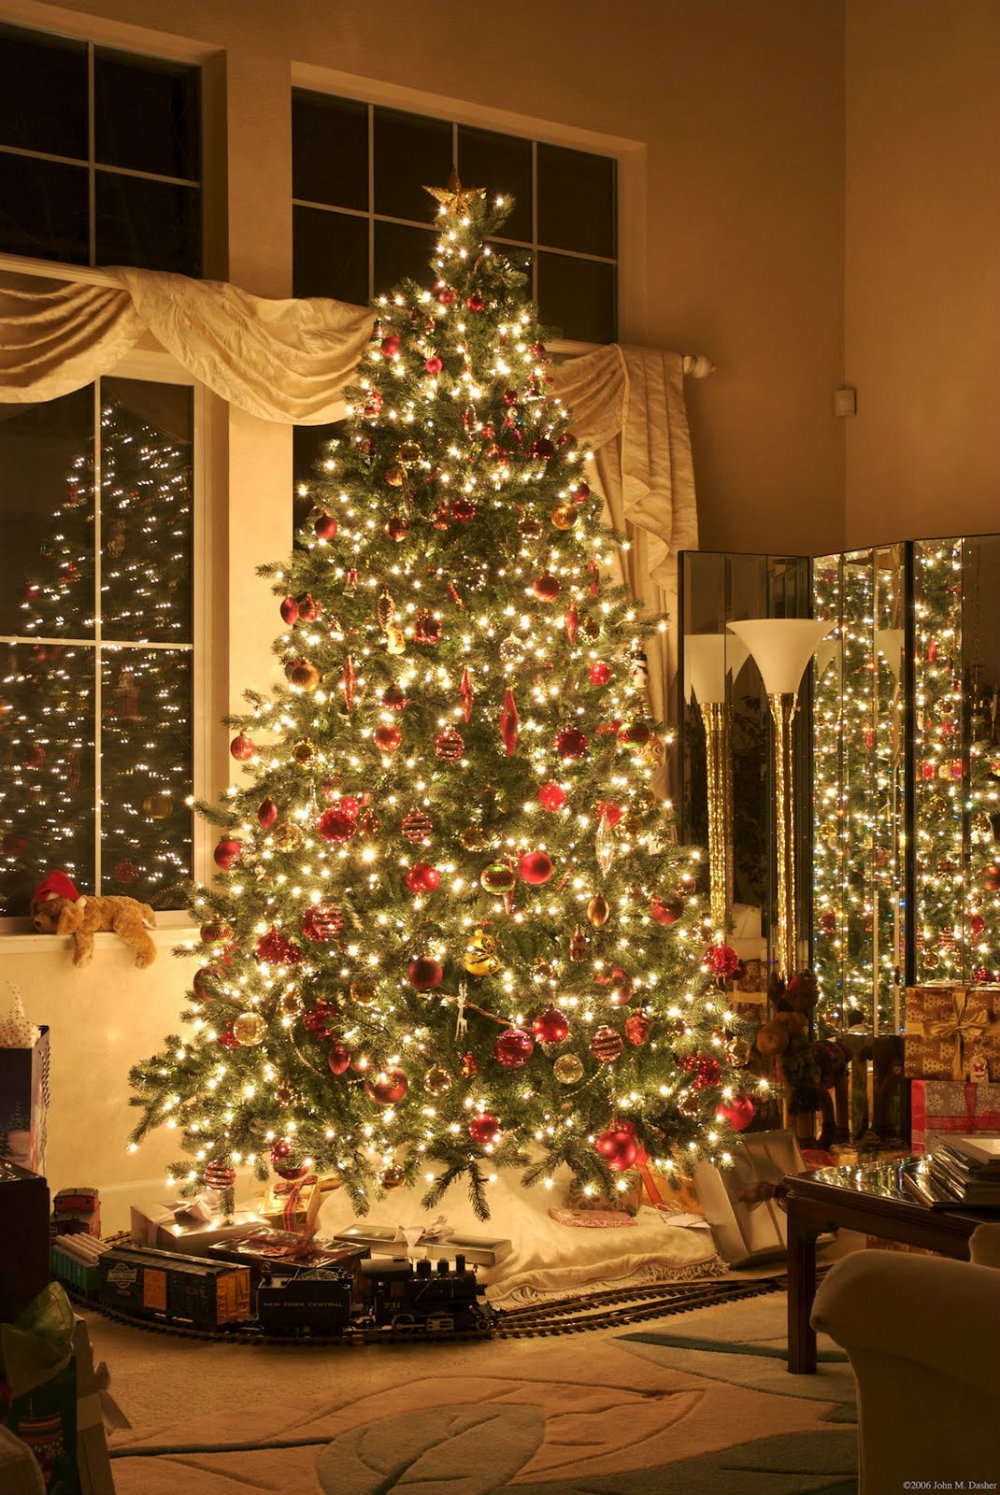 7 Chic Christmas Decorations for The Most Memorable Holiday